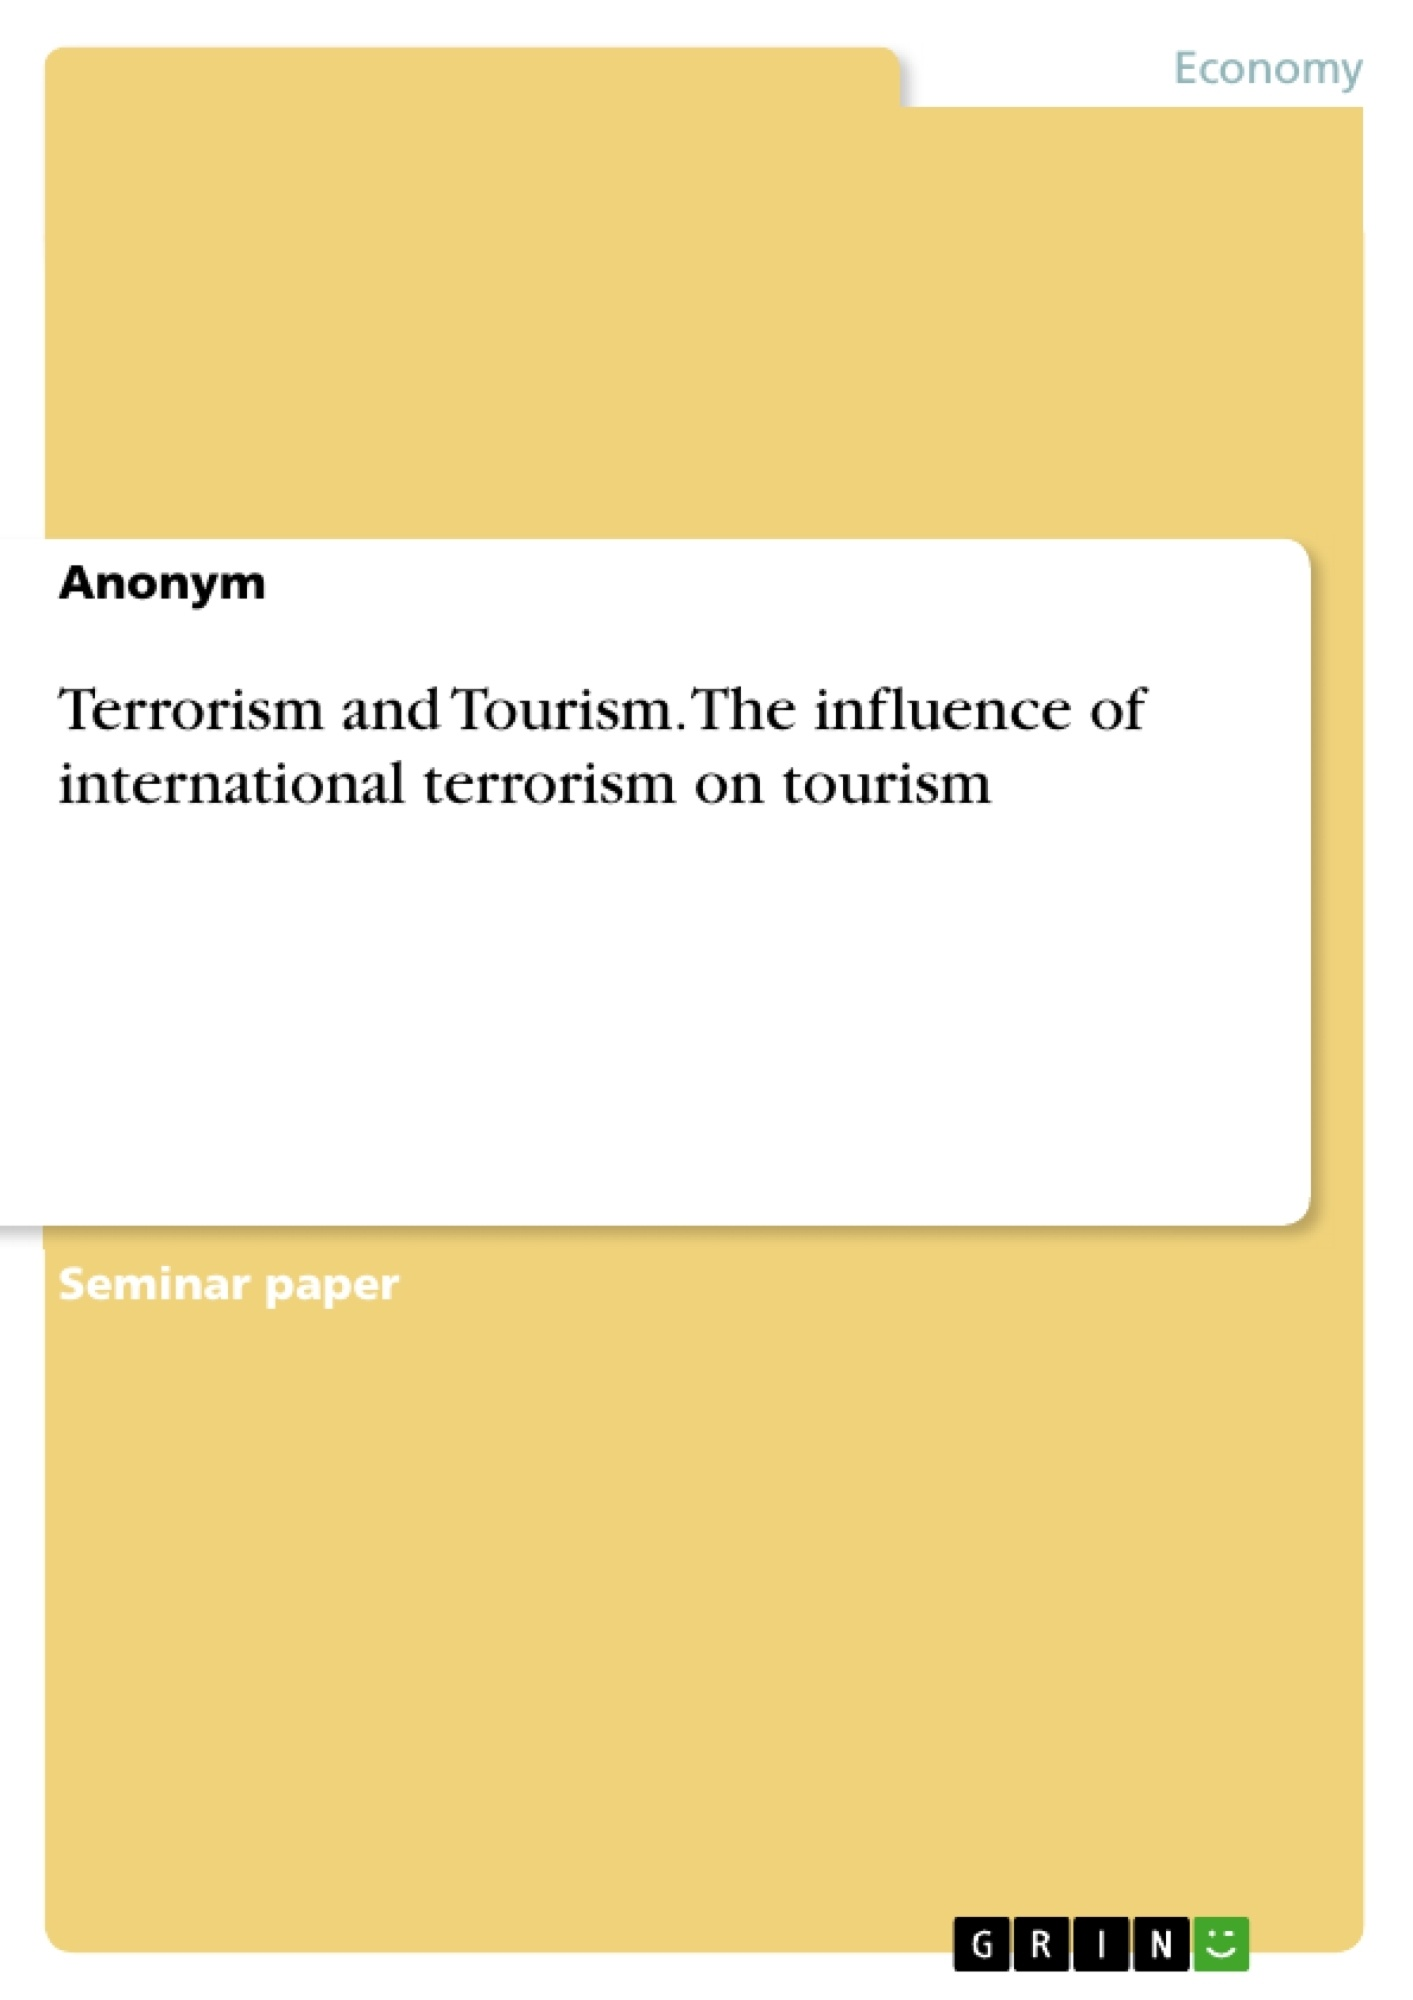 Title: Terrorism and Tourism. The influence of international terrorism on tourism